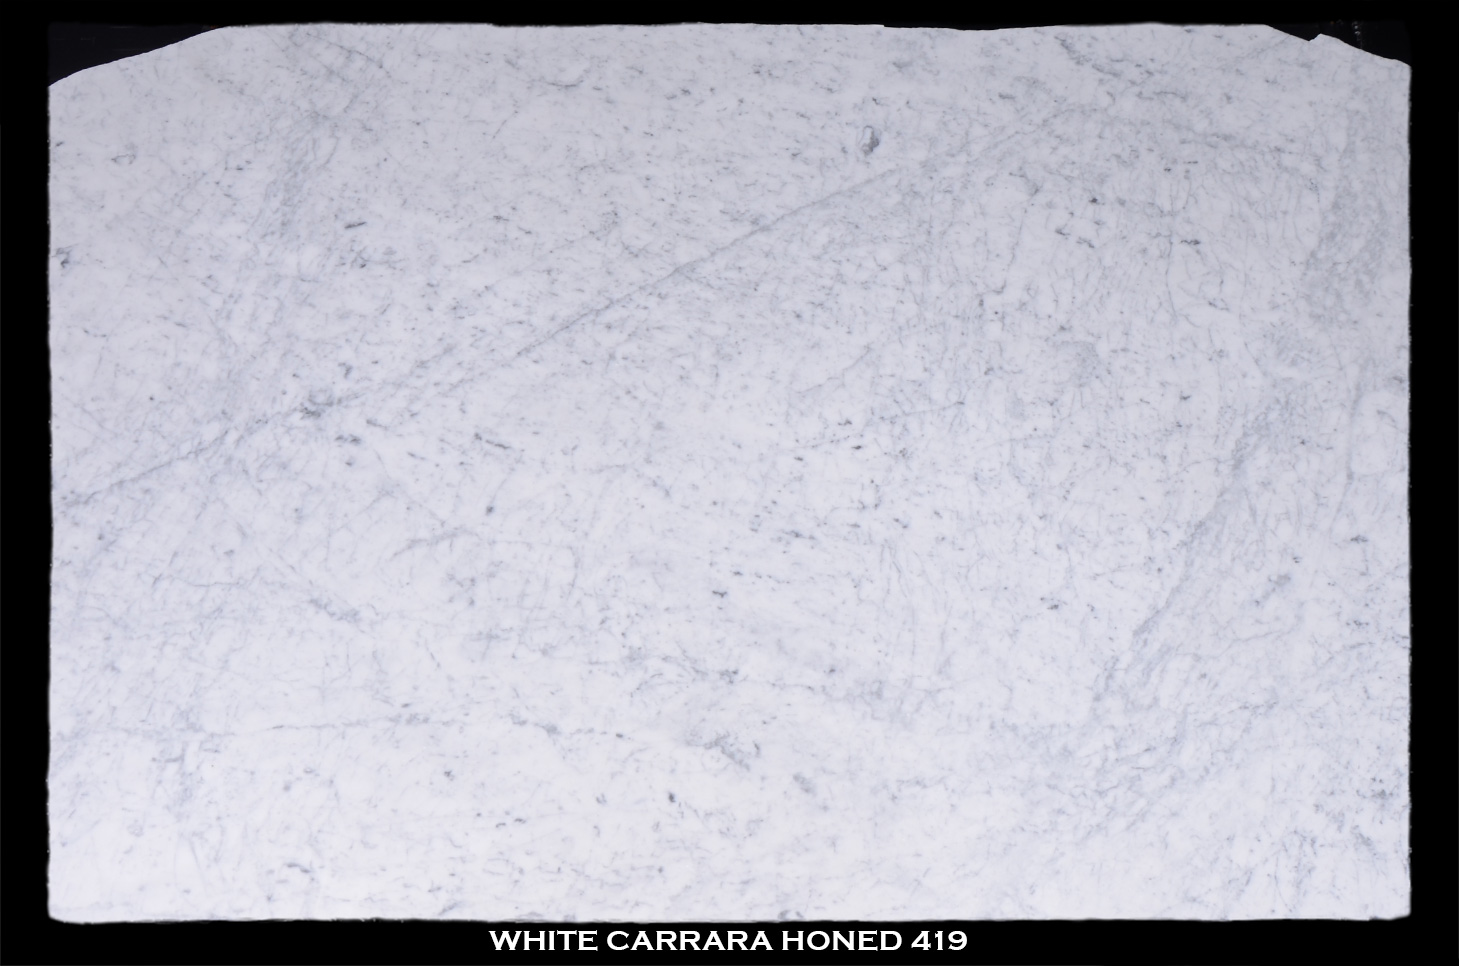 white-carrara-honed-419-slab